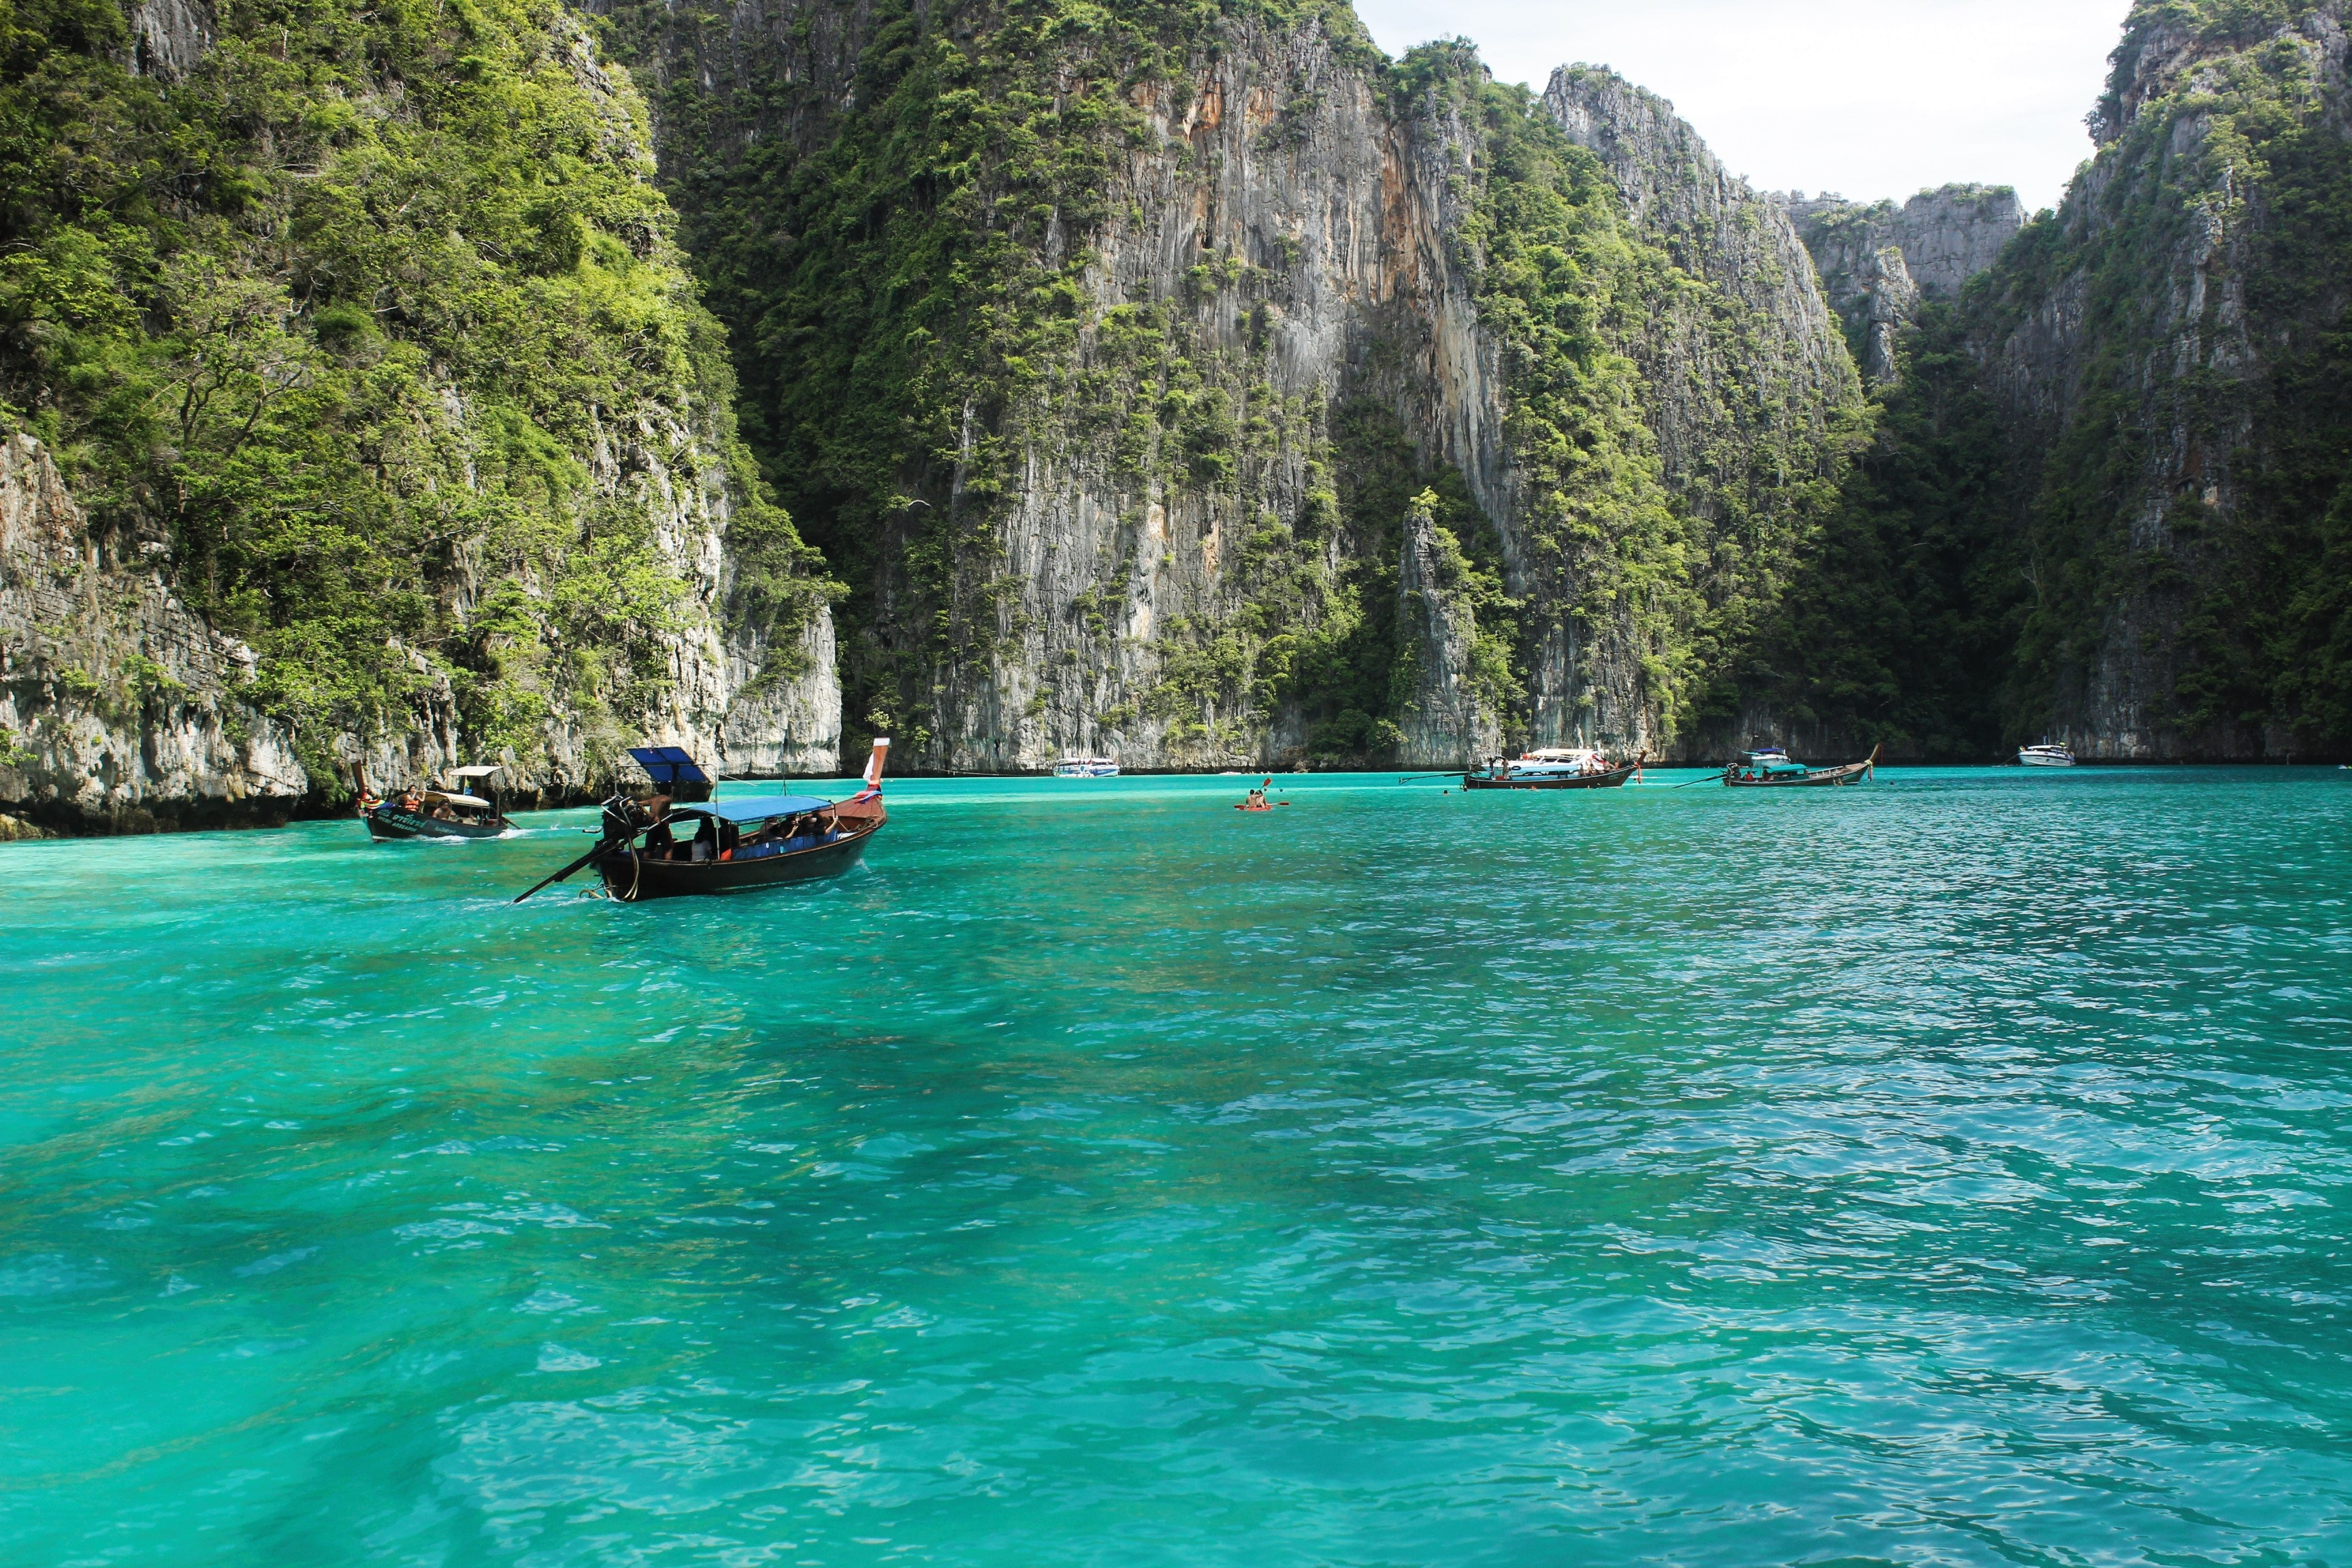 Phi Phi Islands, near Phuket, Thailand